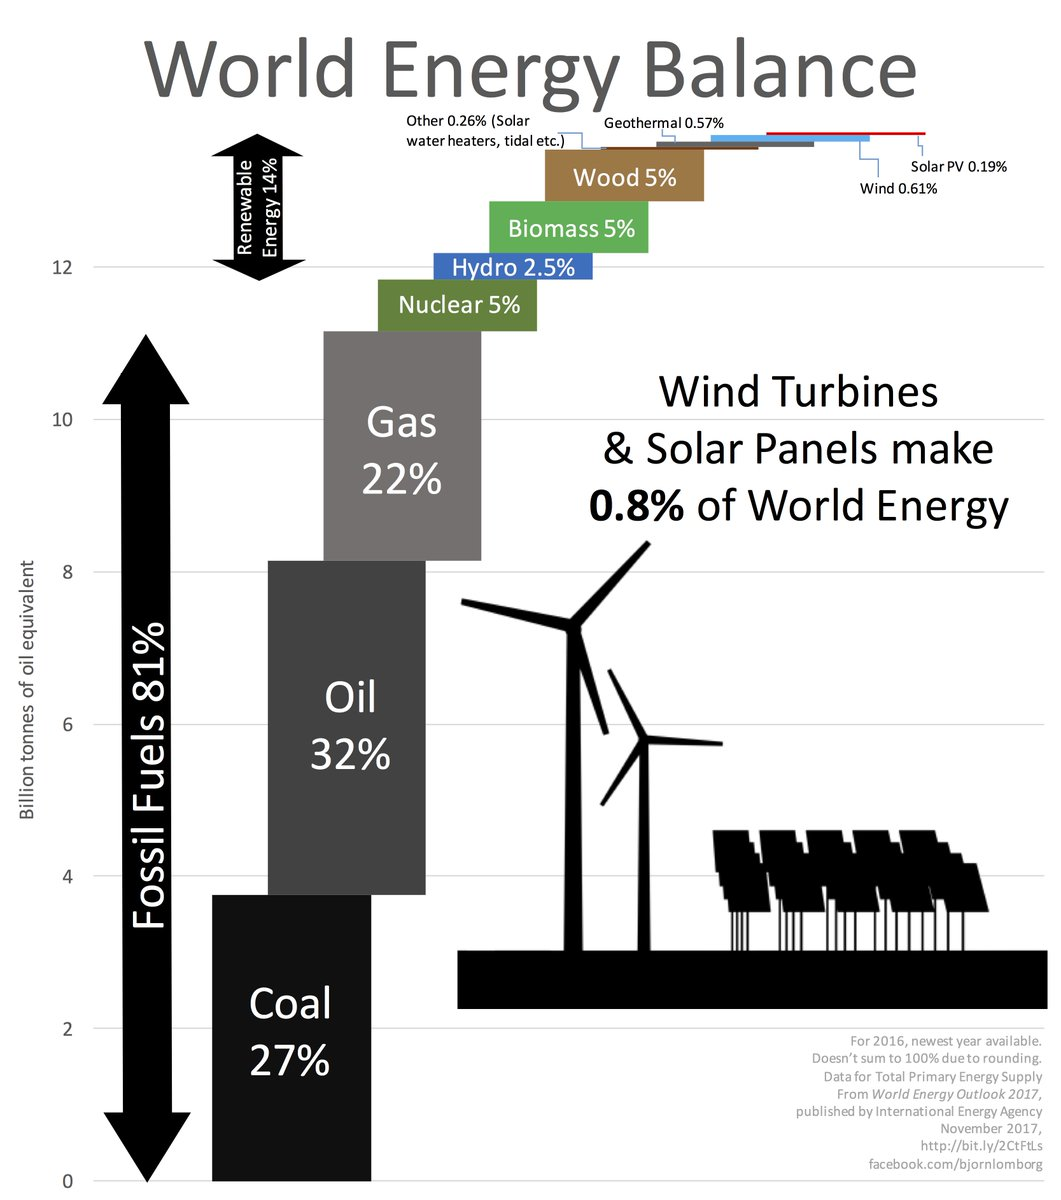 Bjorn Lomborg On Twitter Where Do We Get Our Energy From Mostly Wind Turbine Diagram Contribute 08 Https Facebookcom Bjornlomborg Photos A221758208967168468146605843967 10156541843718968 Type3theater Pic